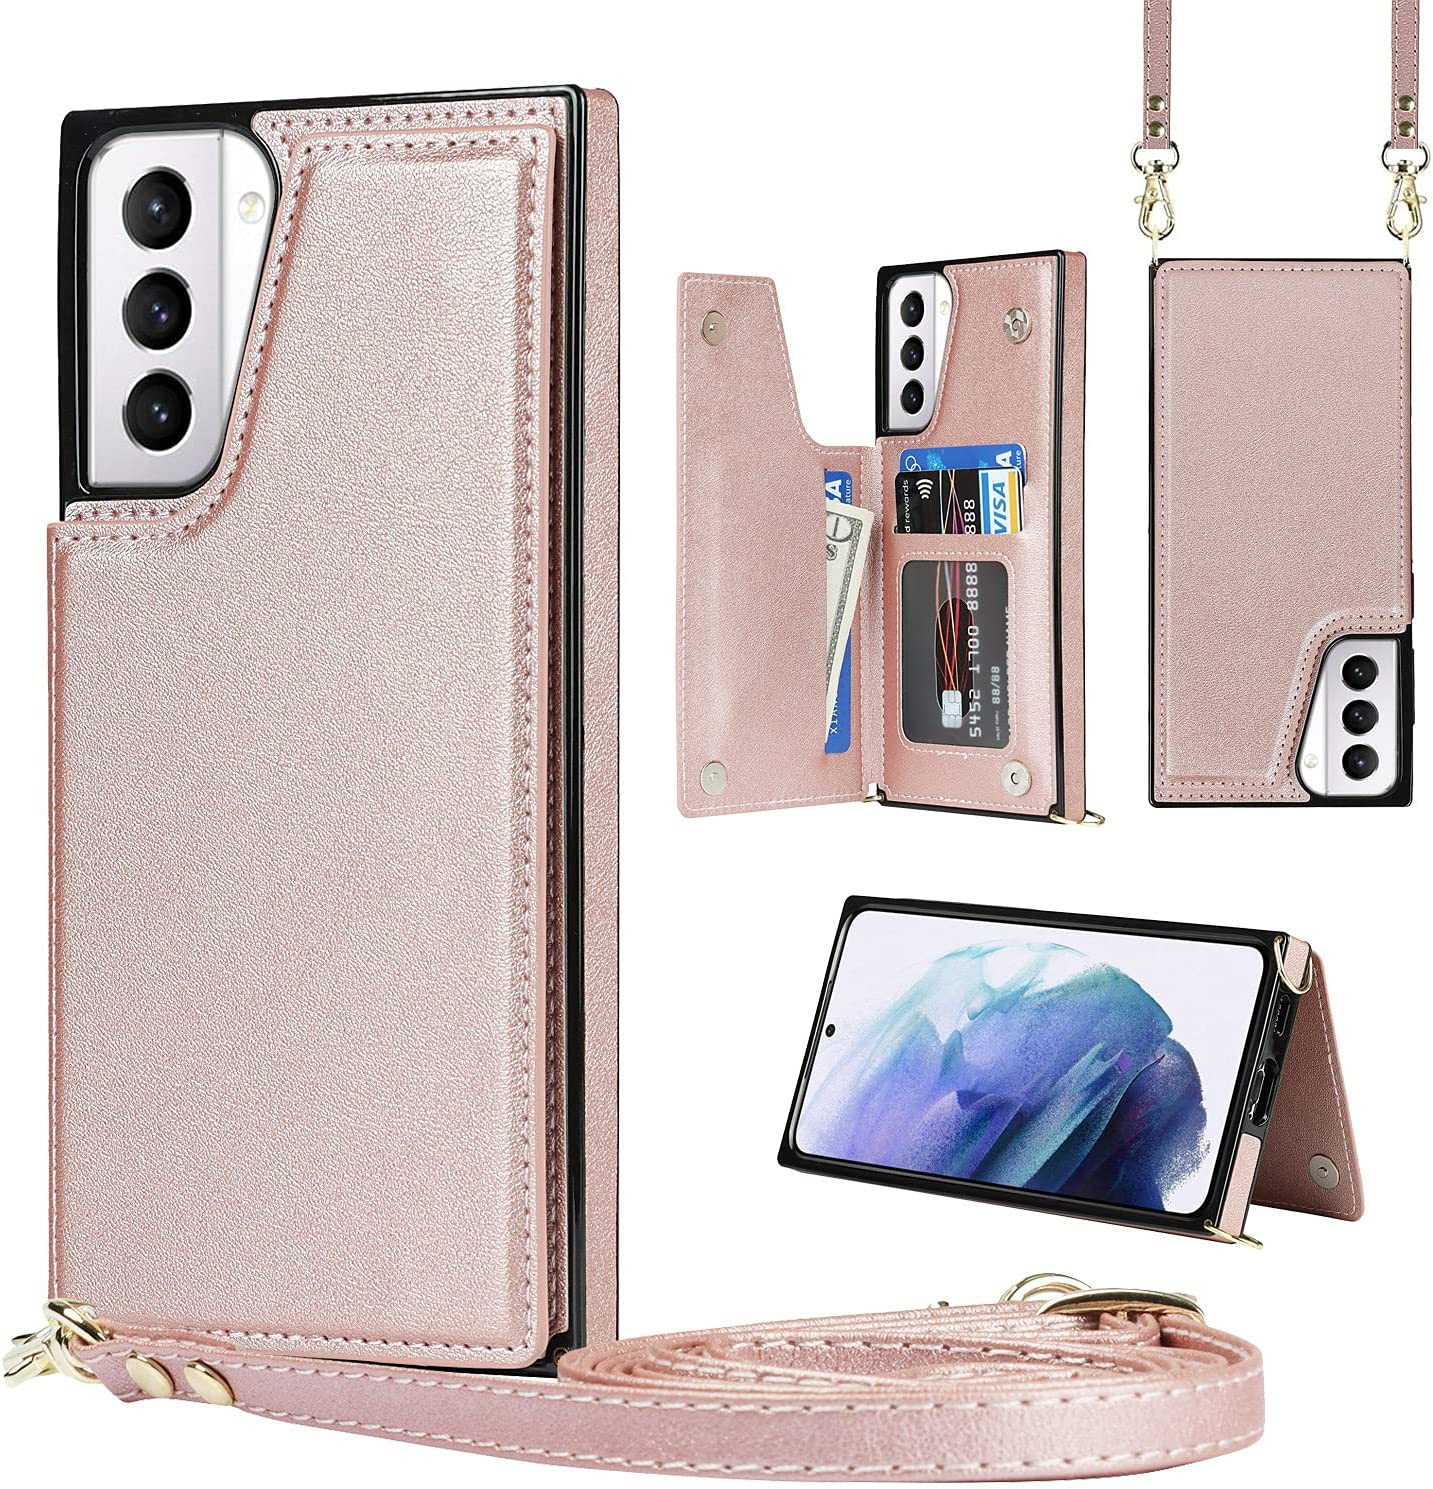 Crossbody Case for iPhone X TPU Leather Shockproof Cover, Wonderful Wallet Function, Kick Stand RFID Blocking Material Lanyard Strap with Women Girl (Rose Gold)